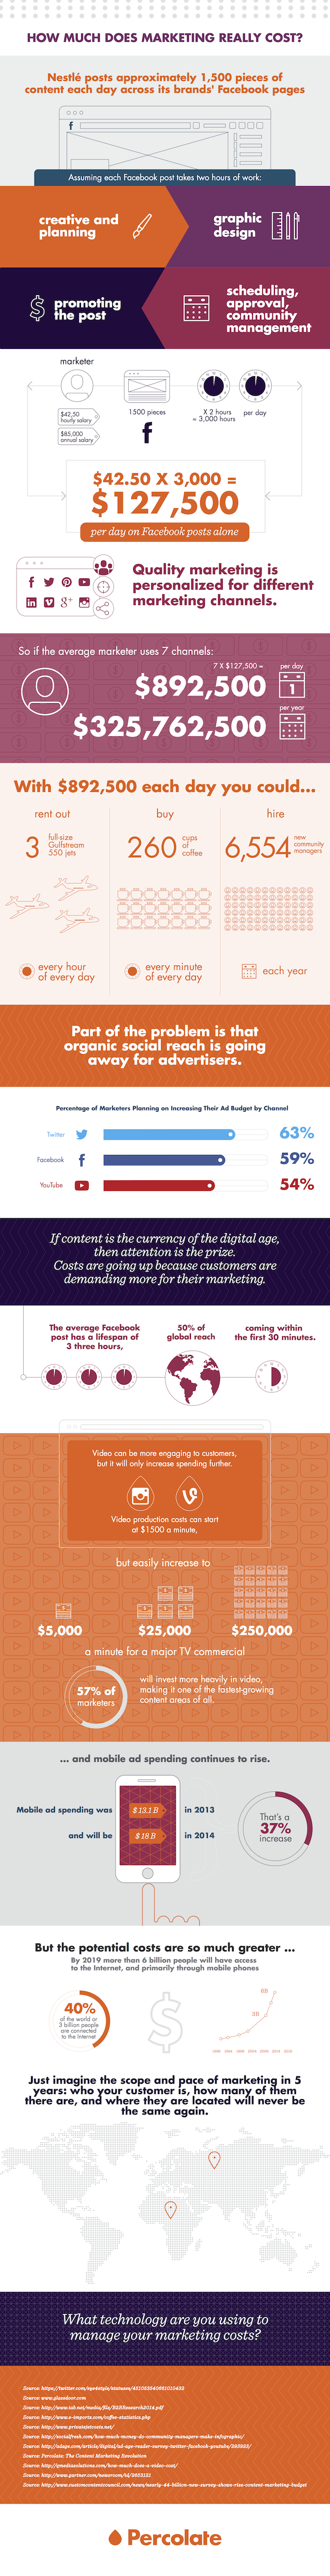 Cost of modern marketing infographic